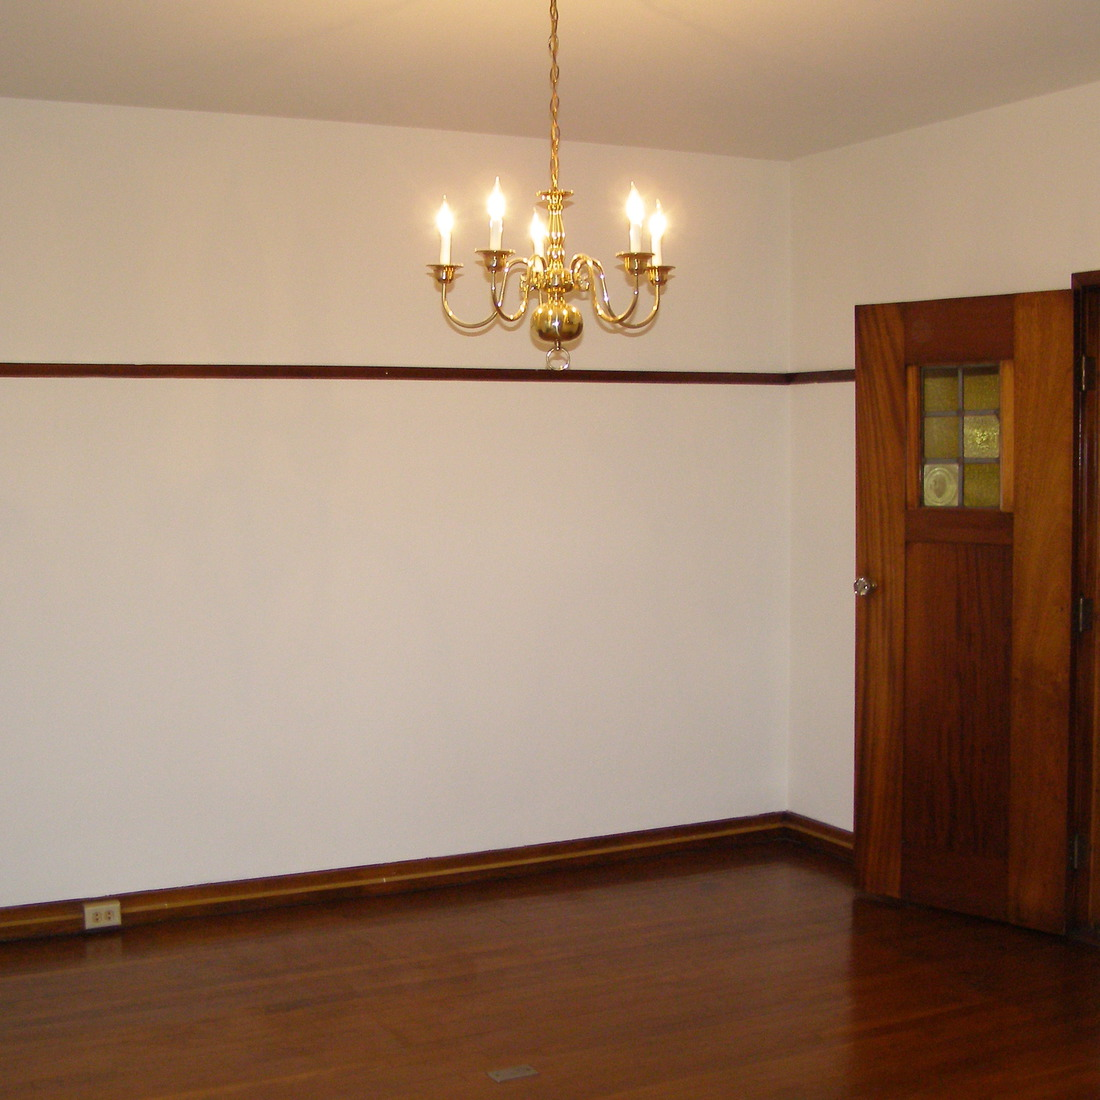 interior of 342 S. Highland Ave, Apt. 11A 4